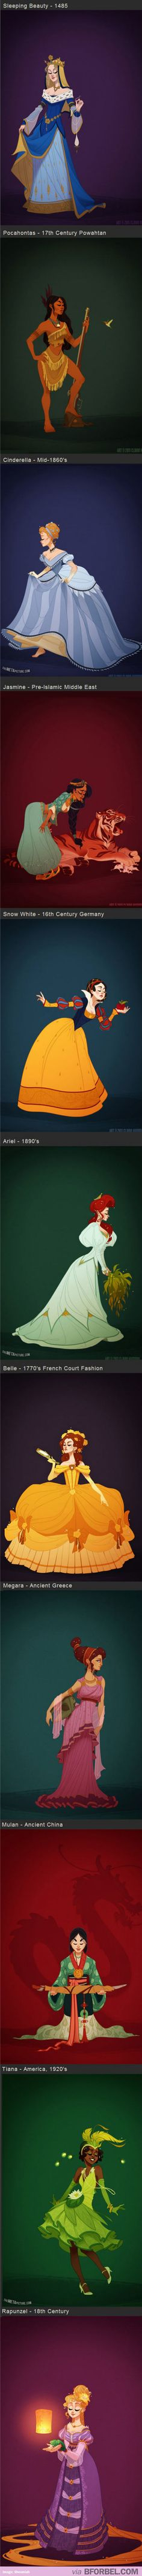 Disney Princesses in Historically Accurate Fashion